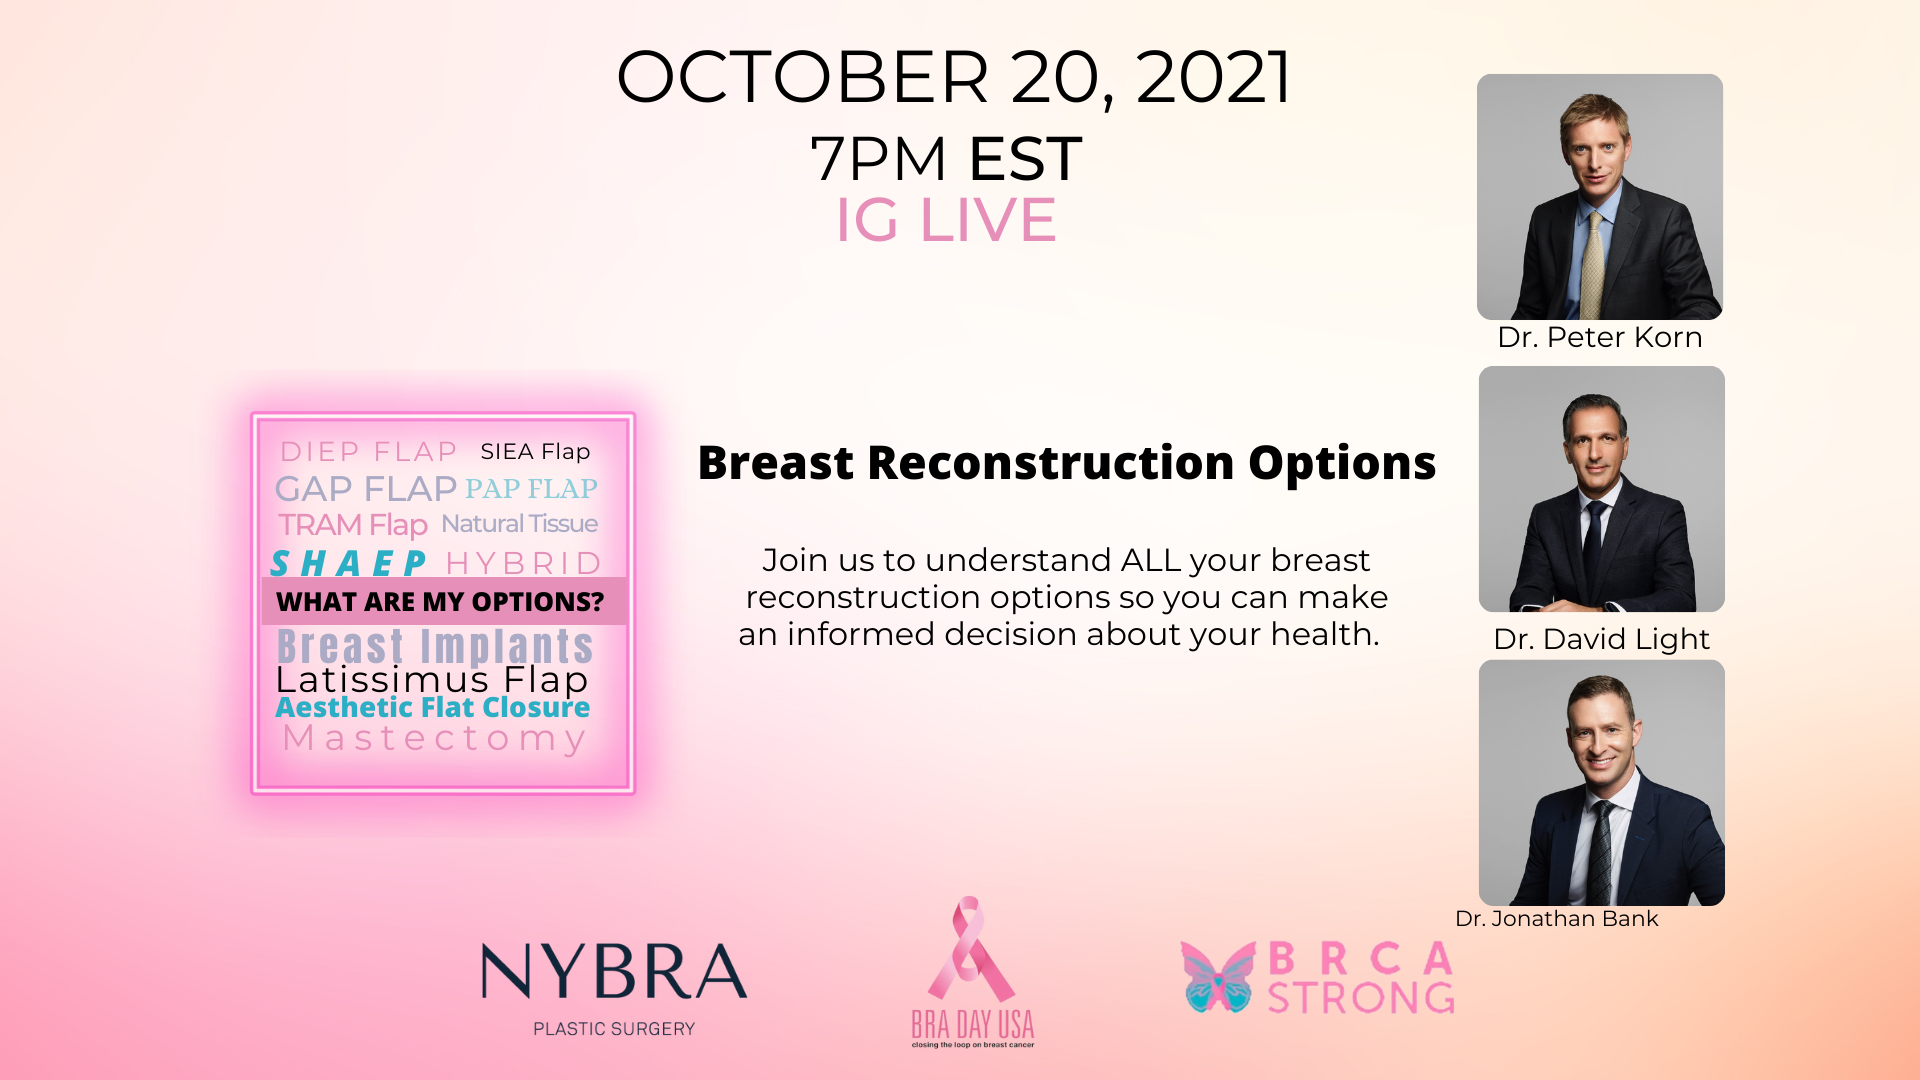 Pink shaded graphic with photos of Drs. Korn, Light and Bank promoting BRA Day Instagram Live on Oct. 20